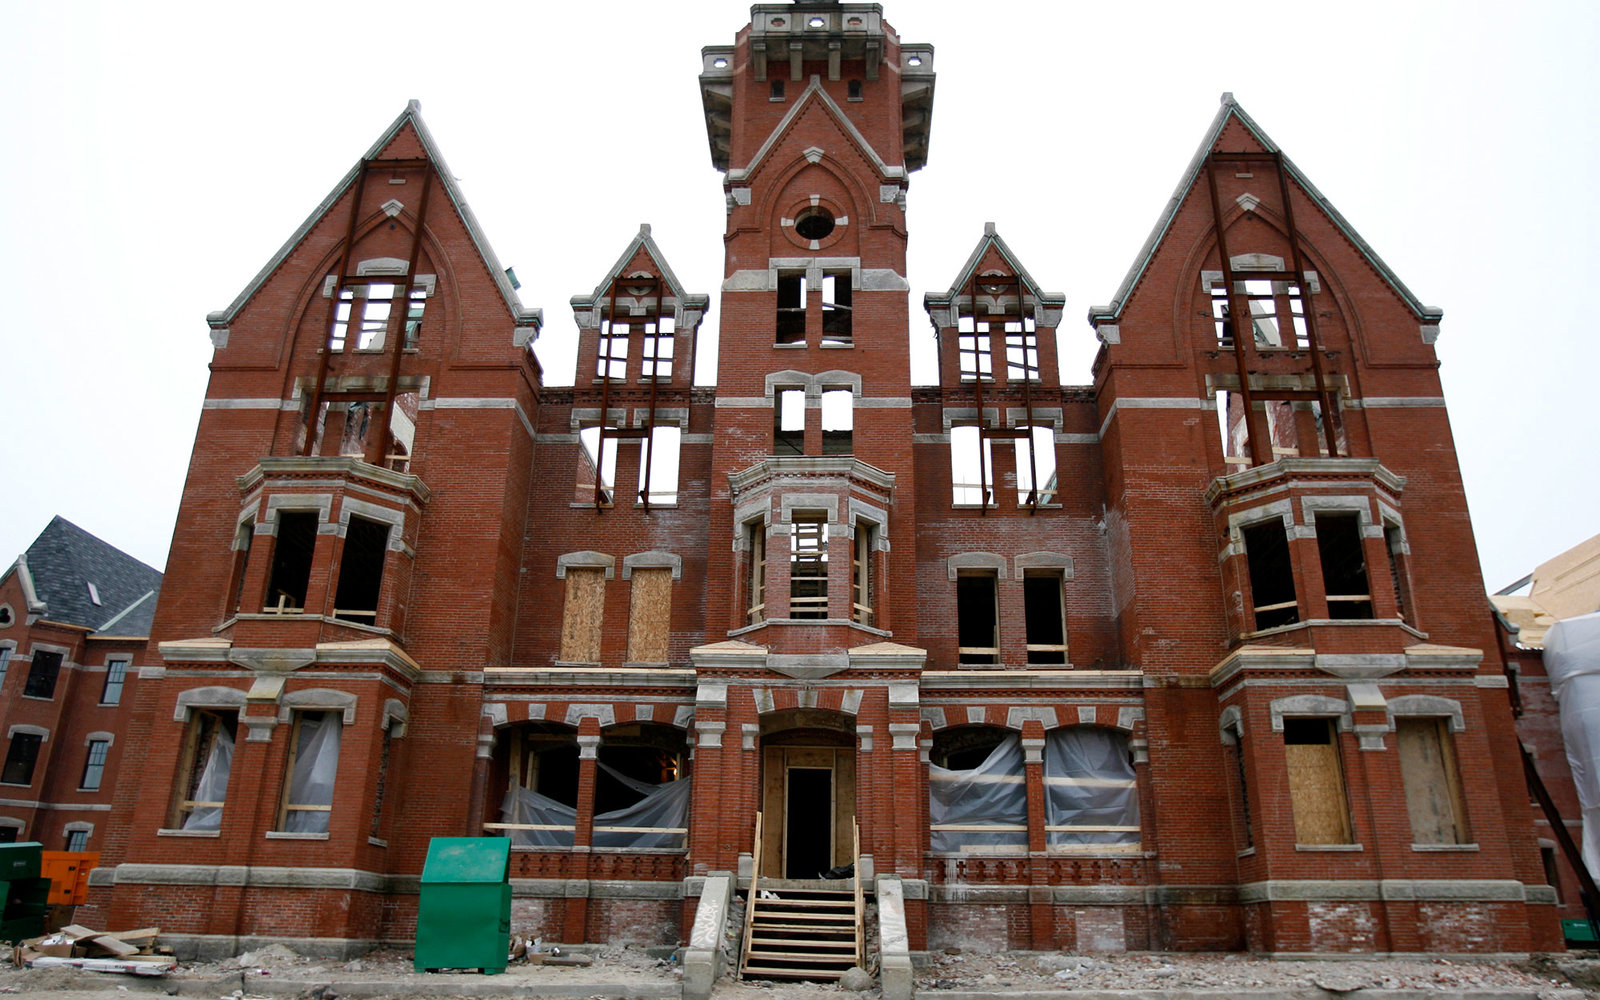 DANVERS, MA - FEBRUARY 2: Avalon Bay communities is developing the former Danvers State Hospital site with a 433 apartment and condo complex. An exterior of the Historic Kirkbride building. Part of the original Building is being renovated and will be used